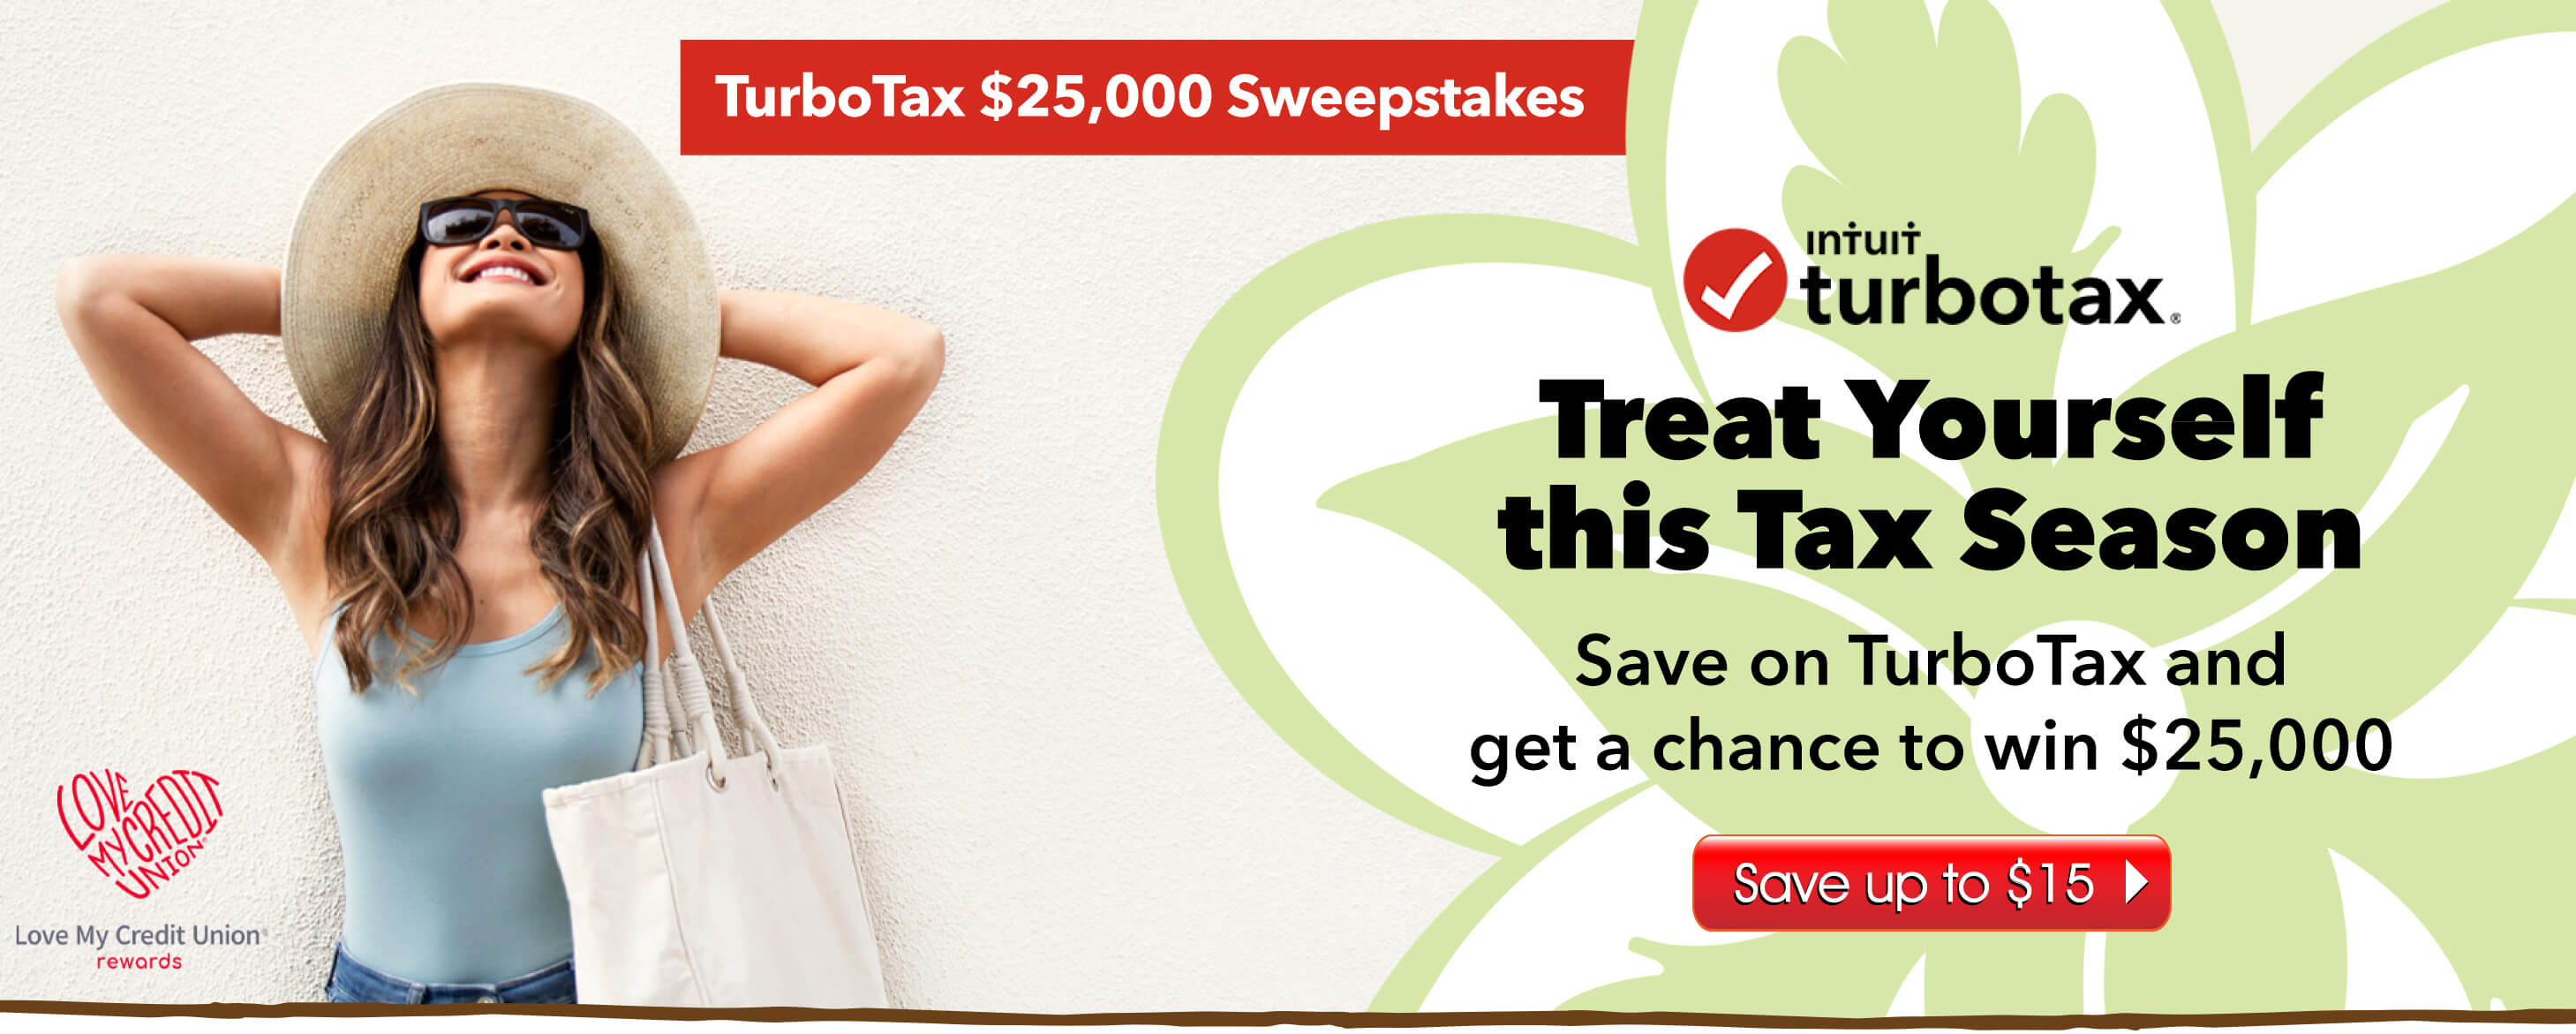 Treat yourself this tax season!  Save on TurboTax and get a chance to win $25,000!